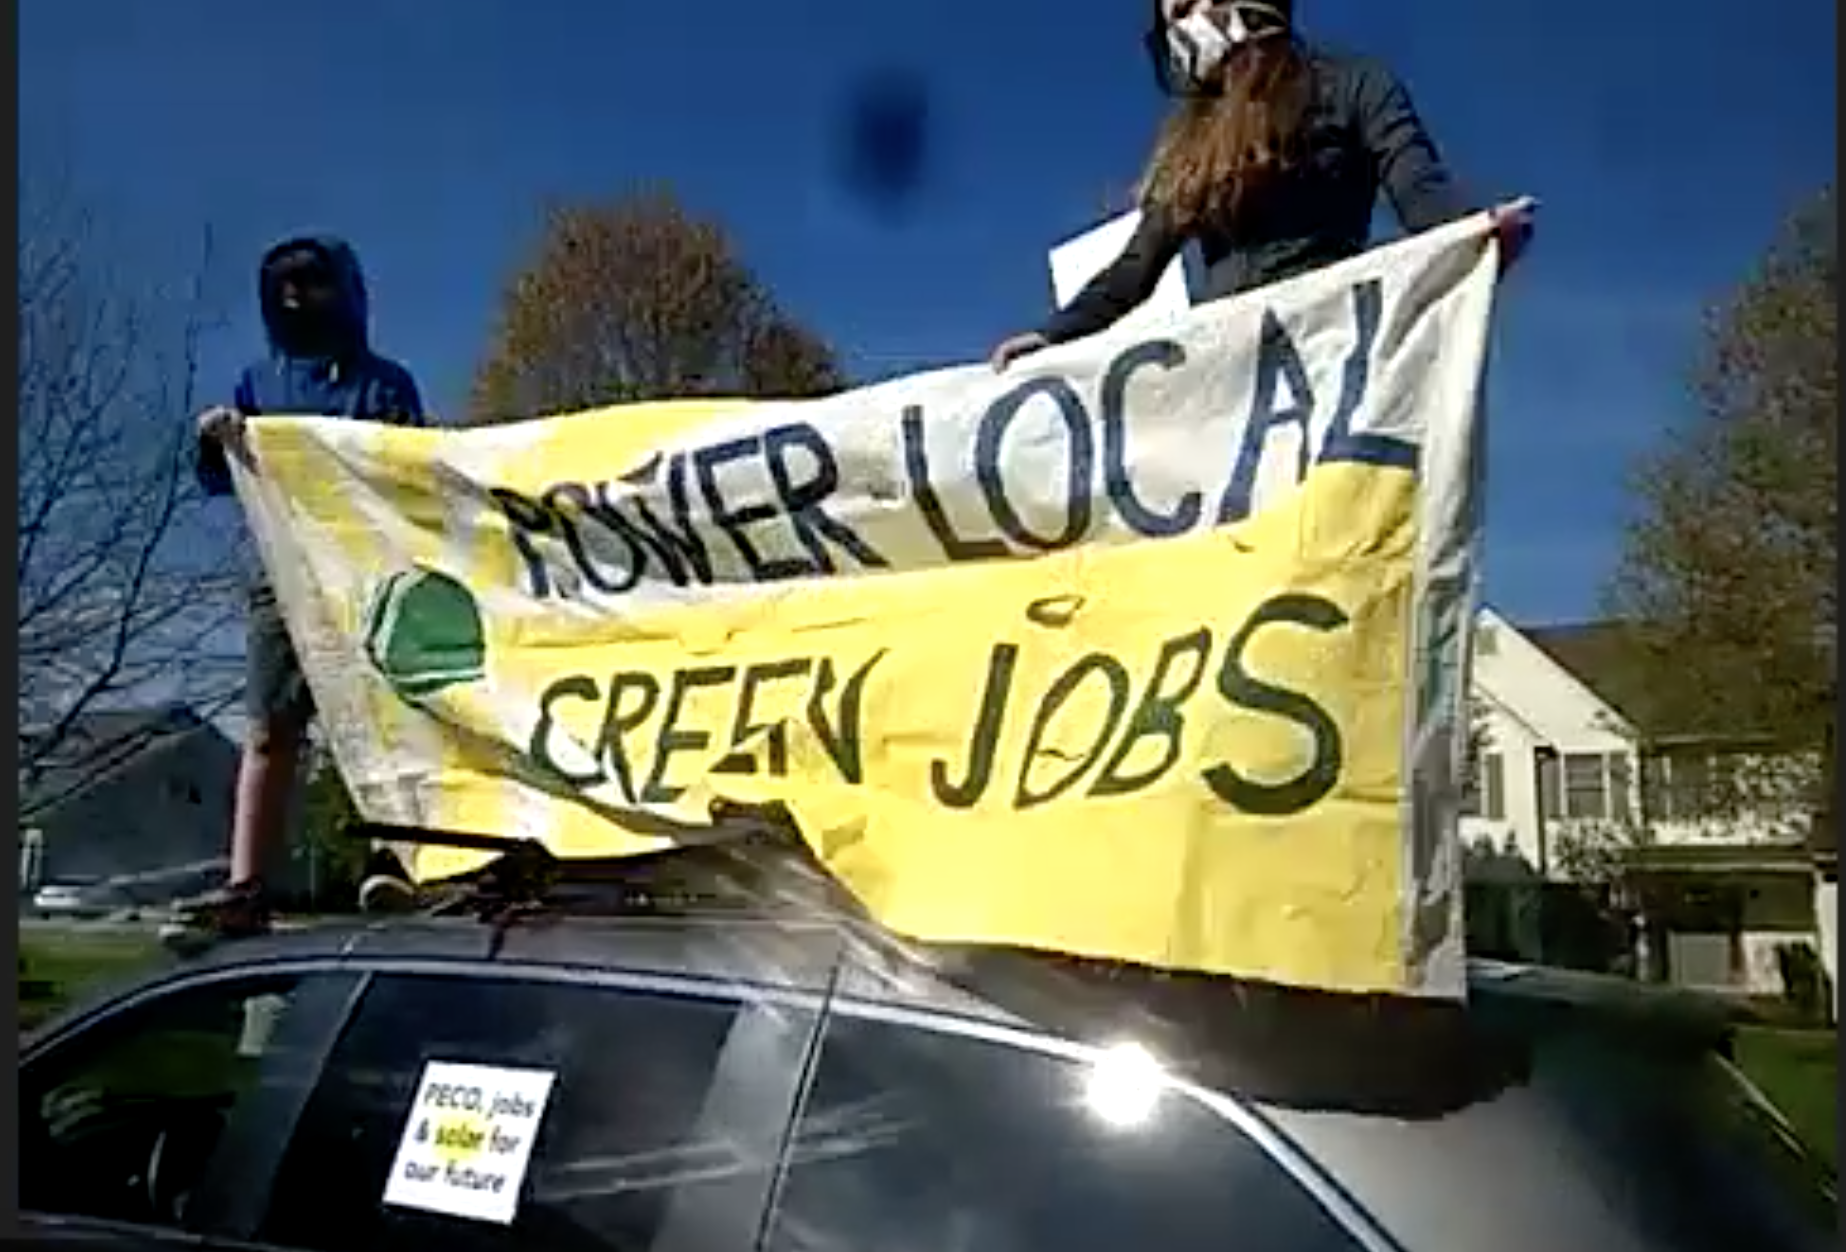 Two EQATers hold a banner that reads Power Local Green Jobs while standing on a car parked across from a large suburban house.